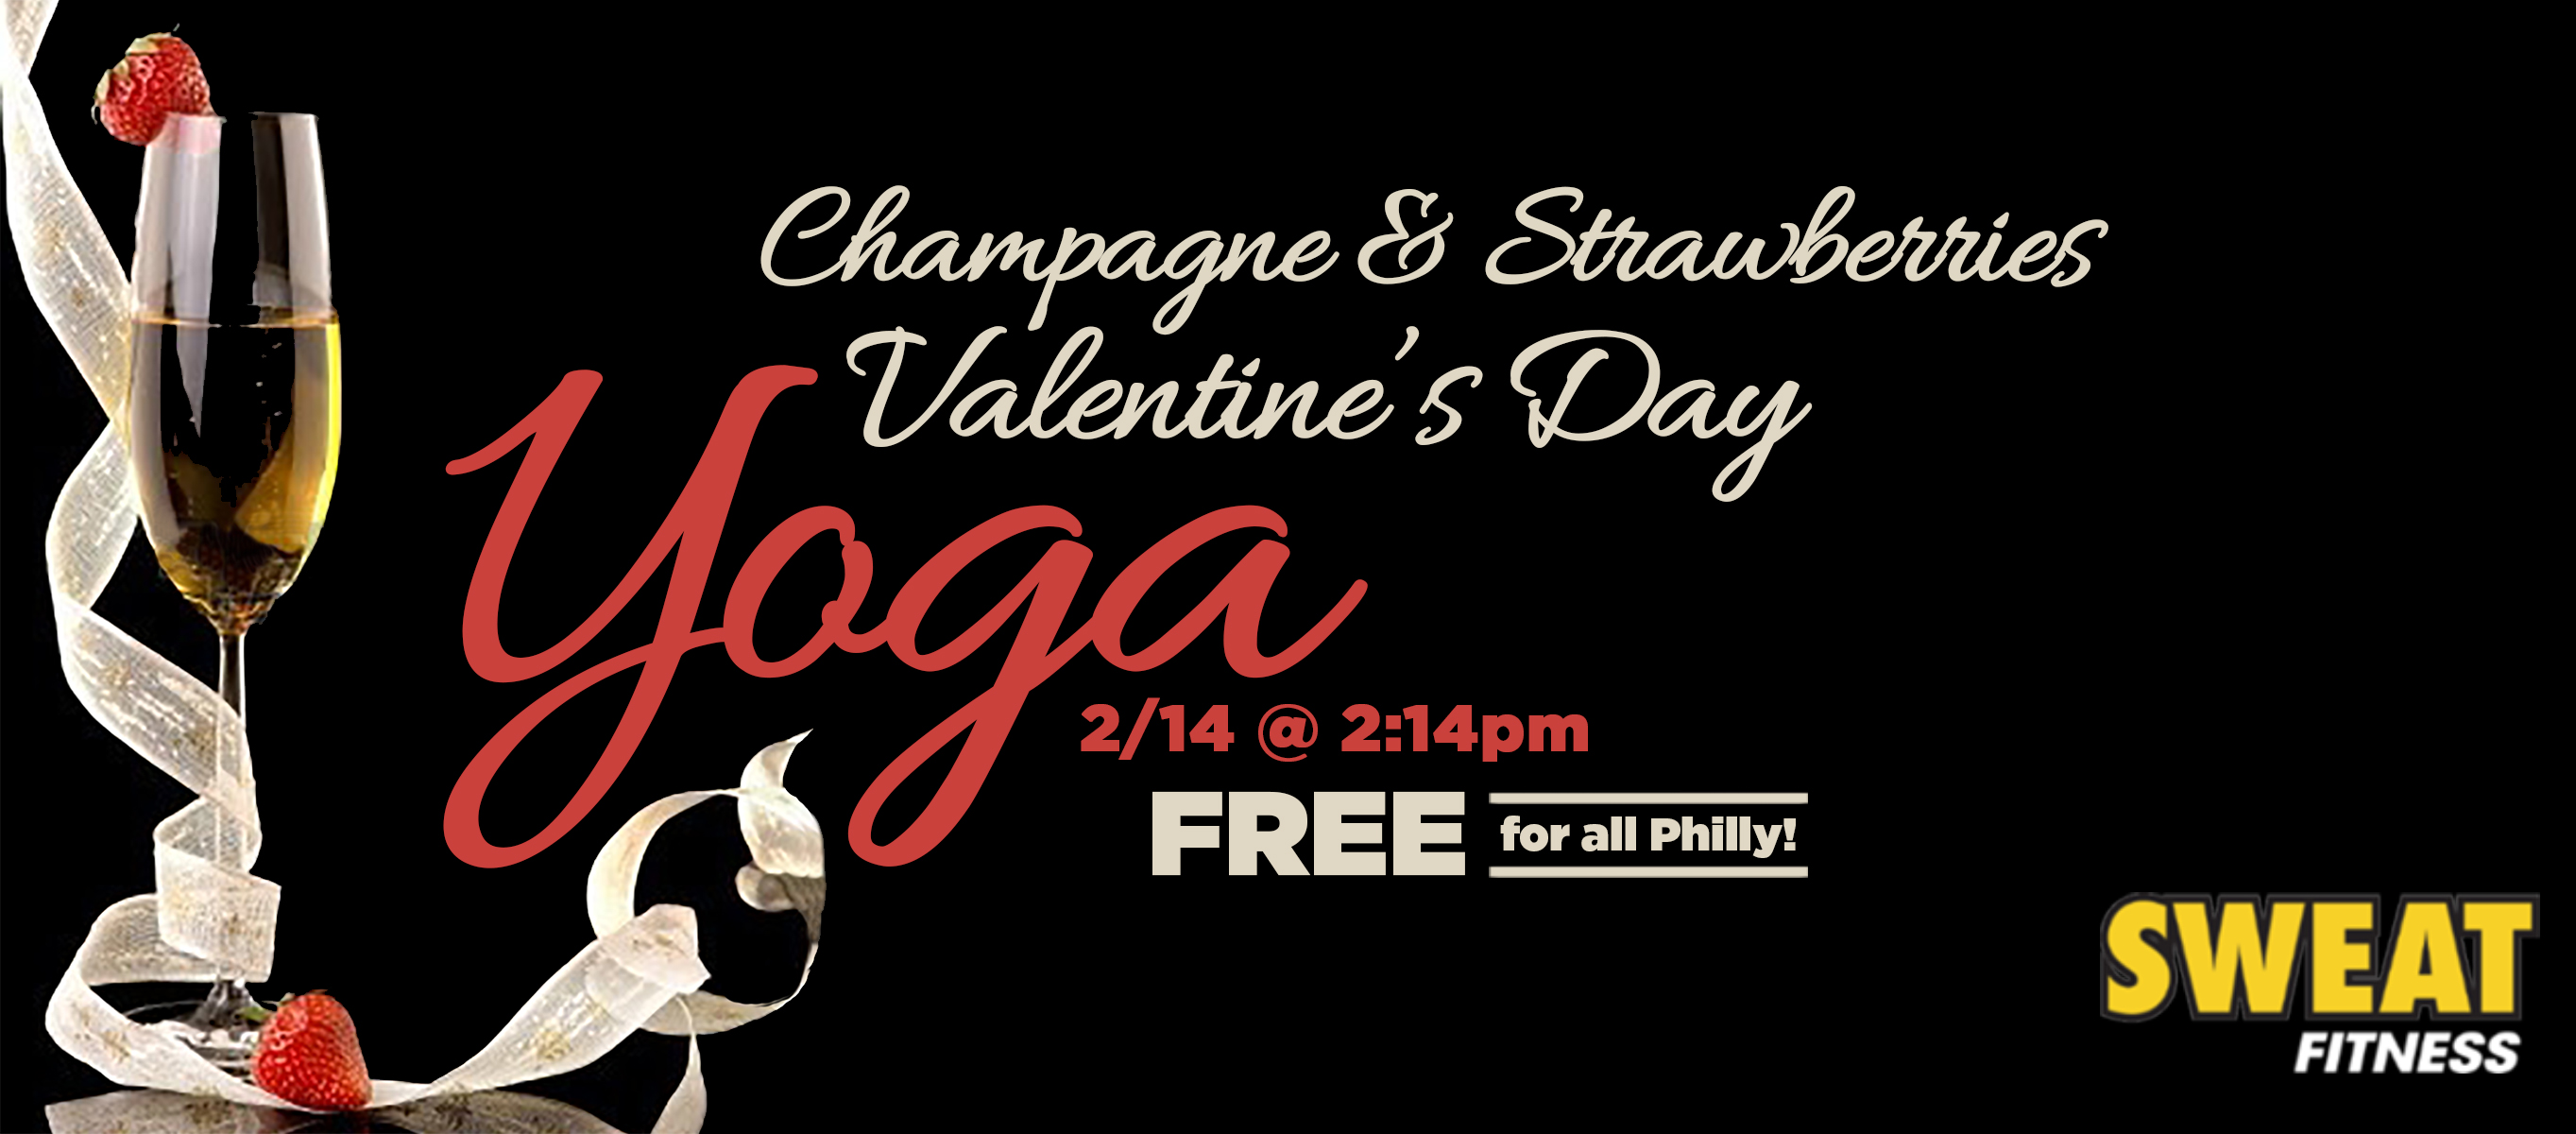 3rd Annual Champagne Strawberries Valentine S Day Yoga Sweat Fitness